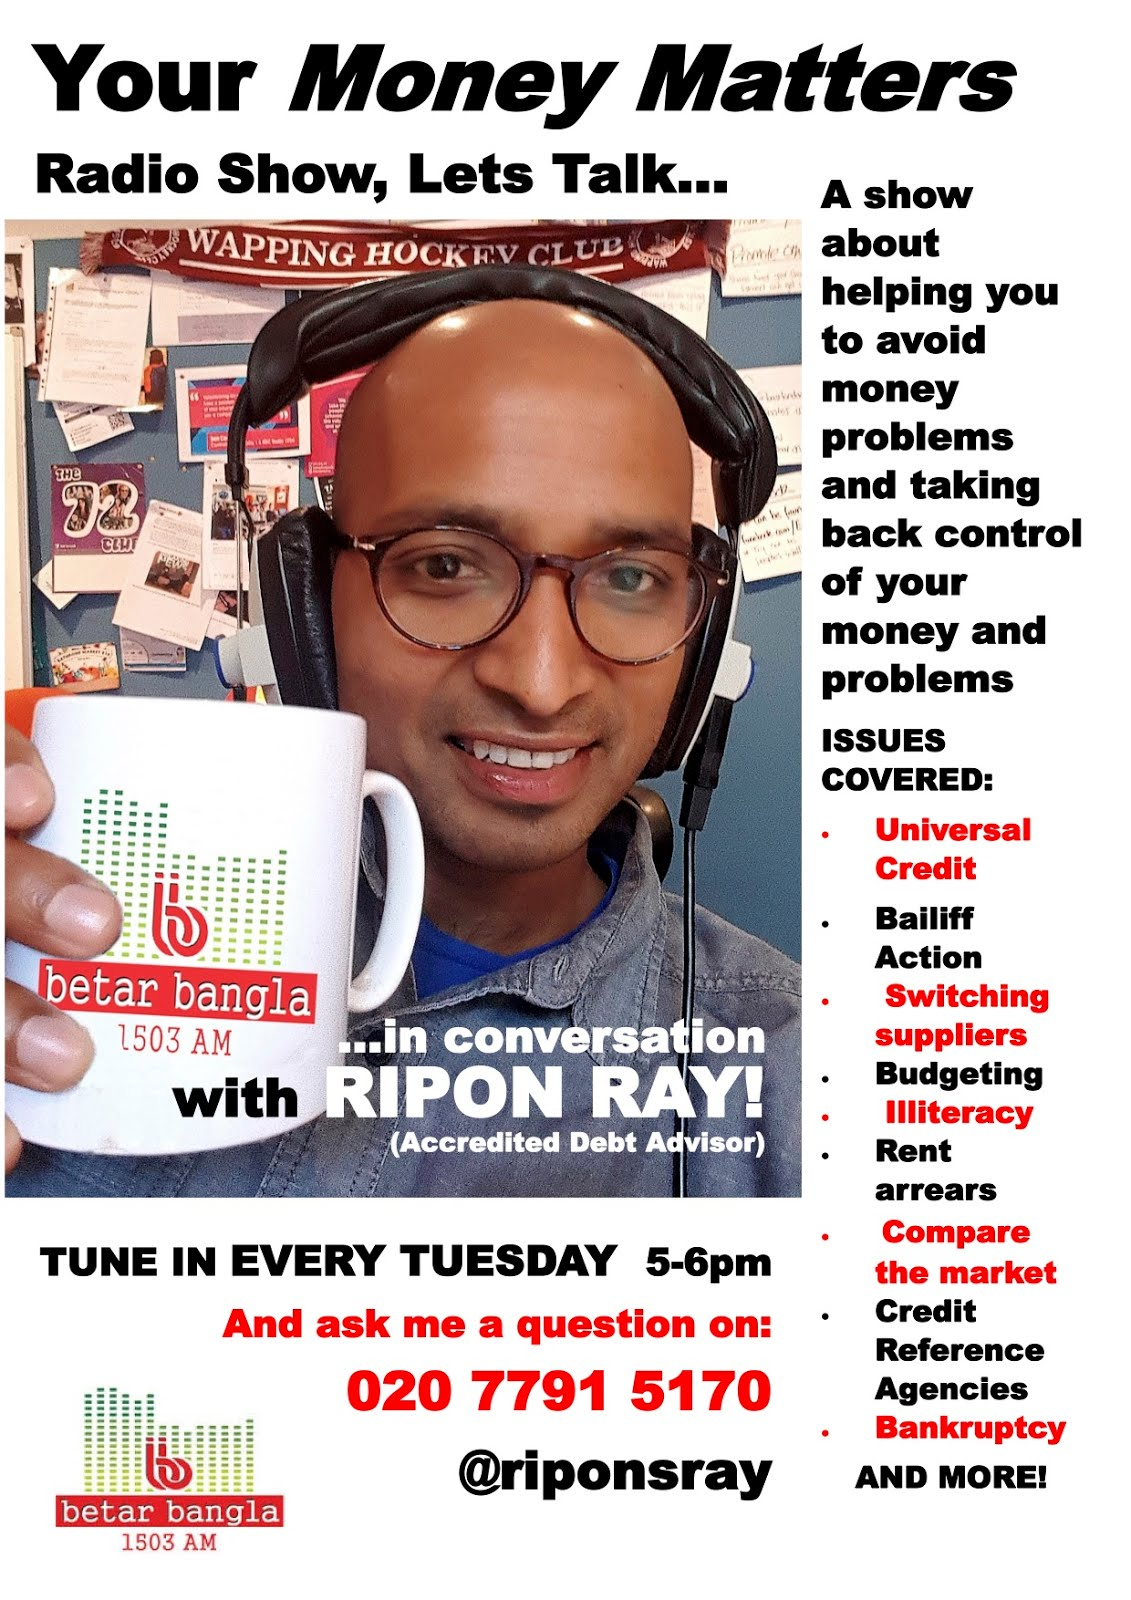 Ripon's Radio Promotional Poster